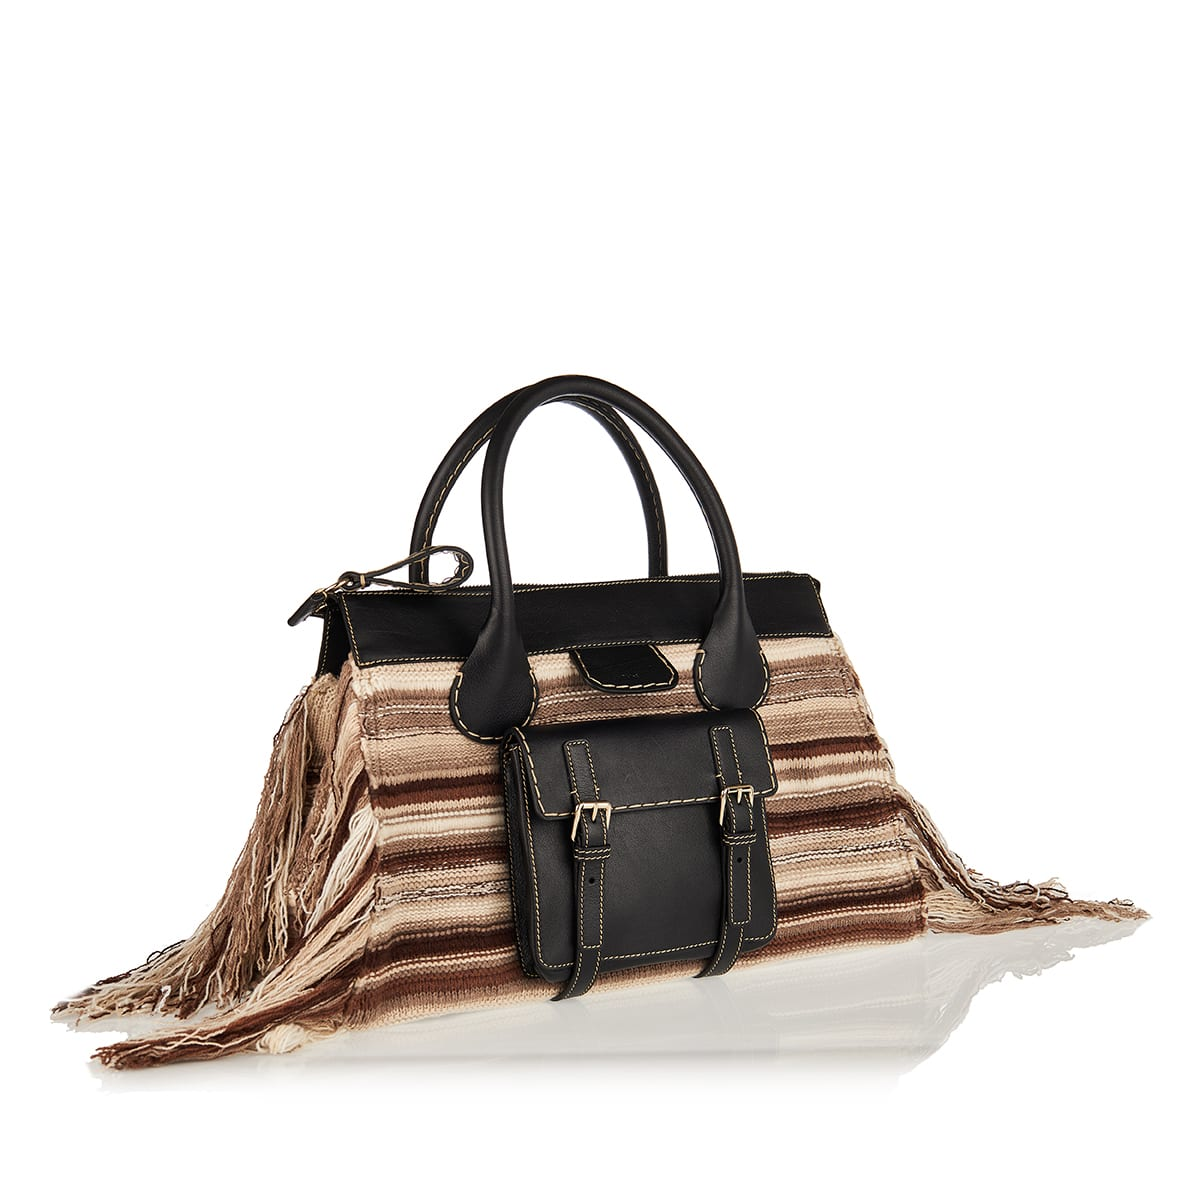 Edith large cashmere and leather bag